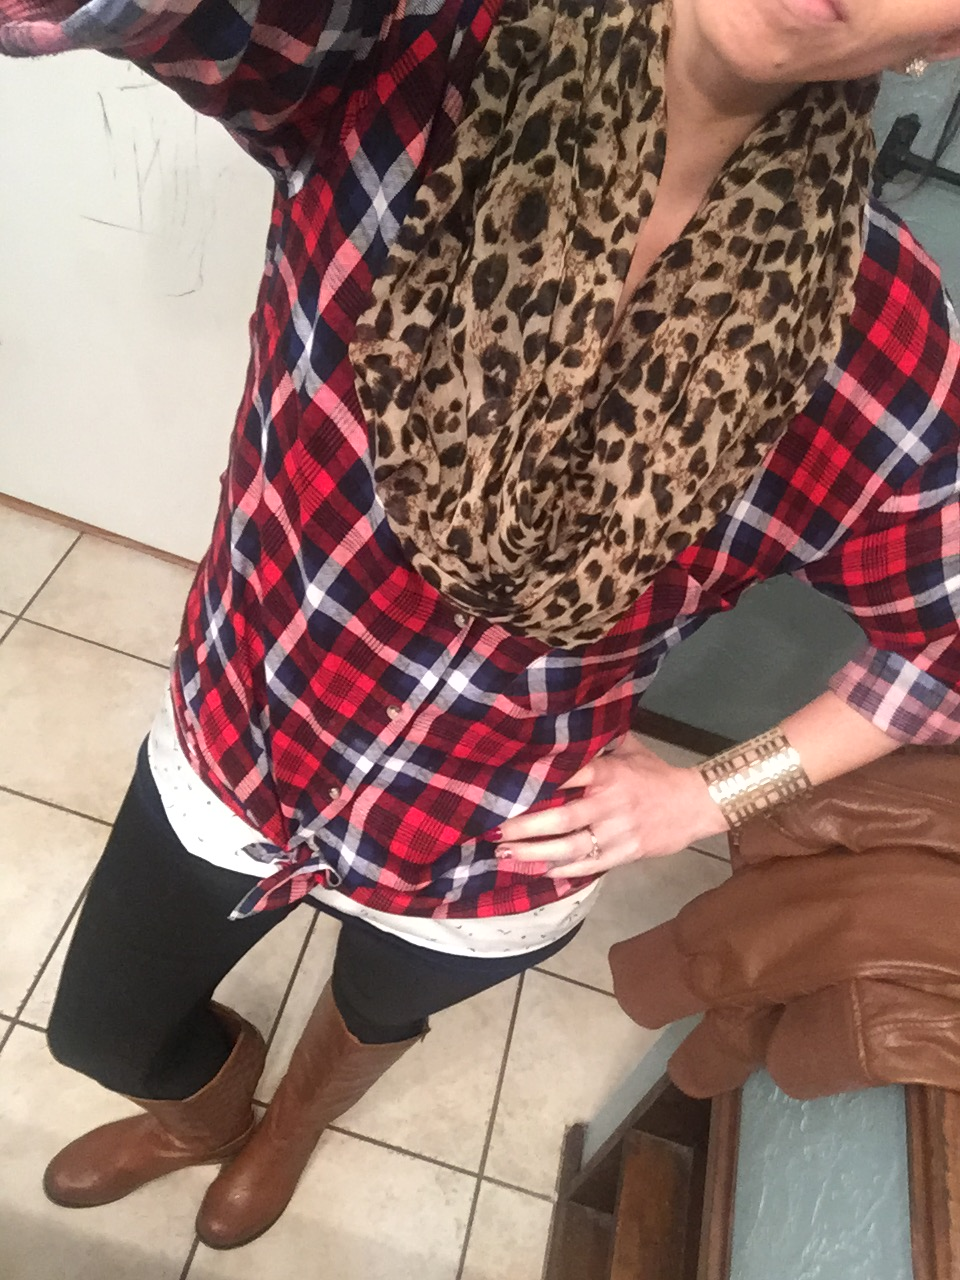 Some of my new outfits in my new clothes. :)